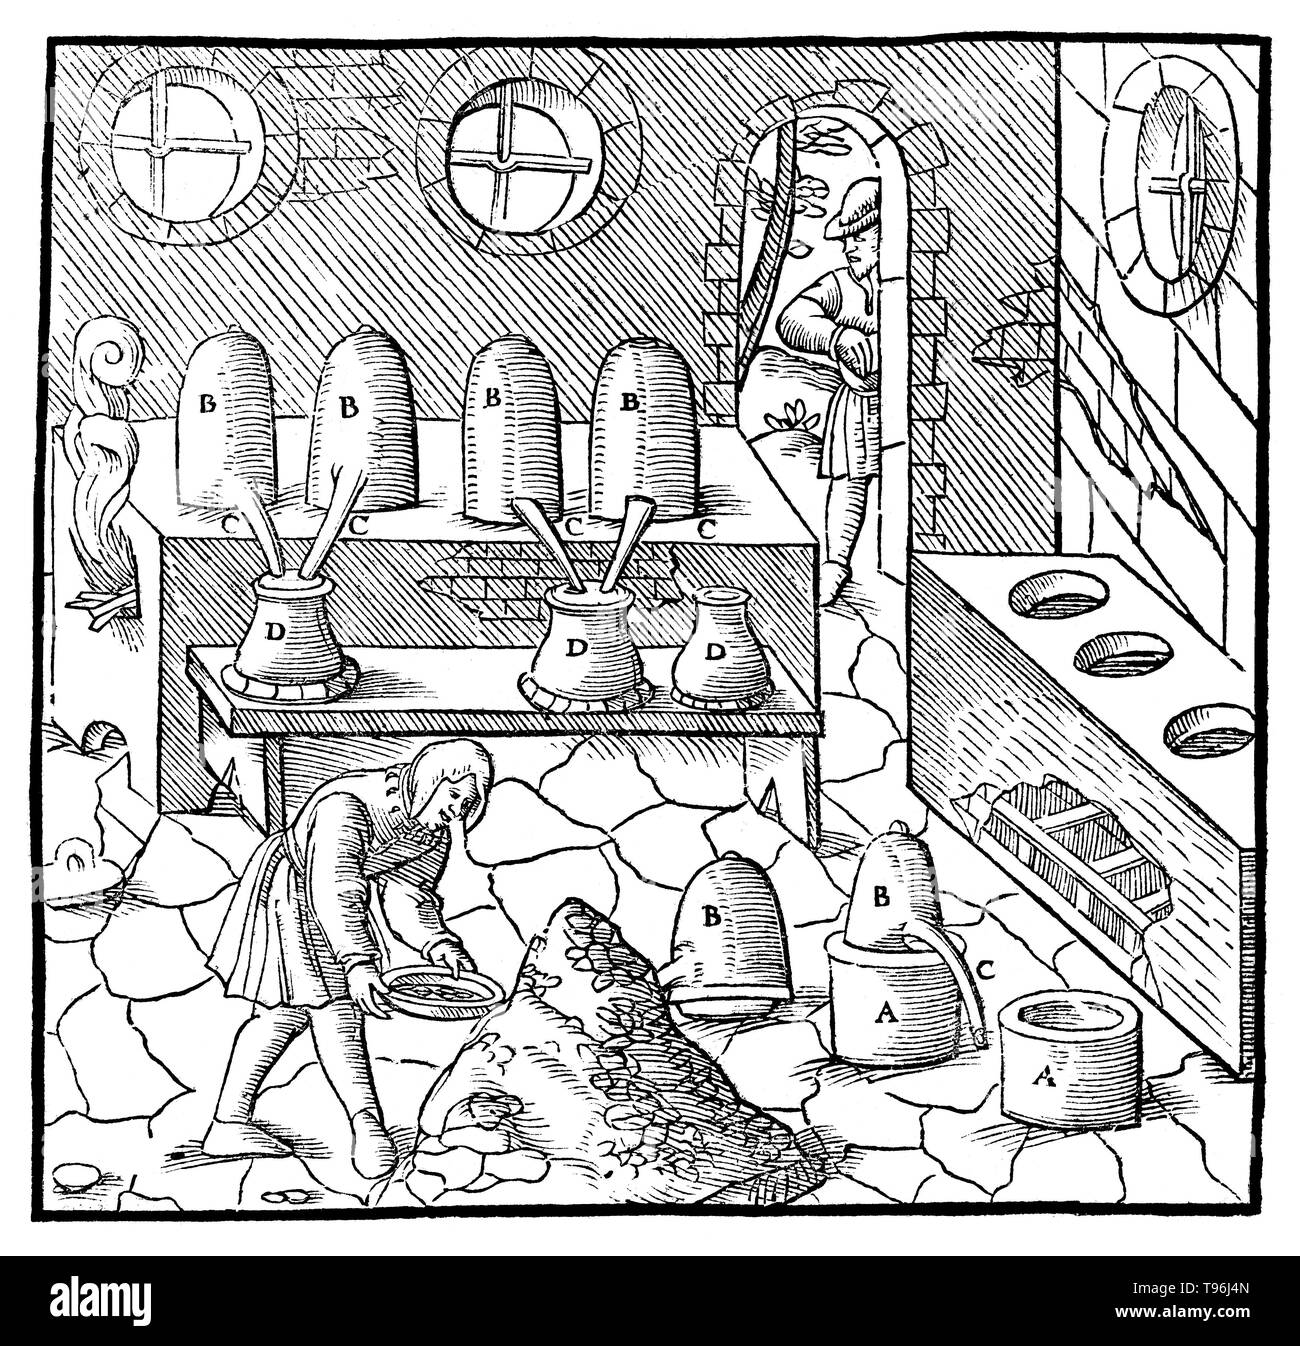 Woodcut from De Re Metallica. The distillation of quicksilver (refining). Georgius Agricola (March 24, 1494 - November 21, 1555) was a German scholar and scientist, known as ''the father of mineralogy''. In 1556 he published his book De Re Metallica, a treatise on mining and extractive metallurgy, with woodcuts illustrating processes to extract ores from the ground and metal from the ore, and the many uses of water mills in mining. He described and illustrated how ore veins occur in and on the ground, making the work an early contribution to the developing science of geology. He described pros - Stock Image